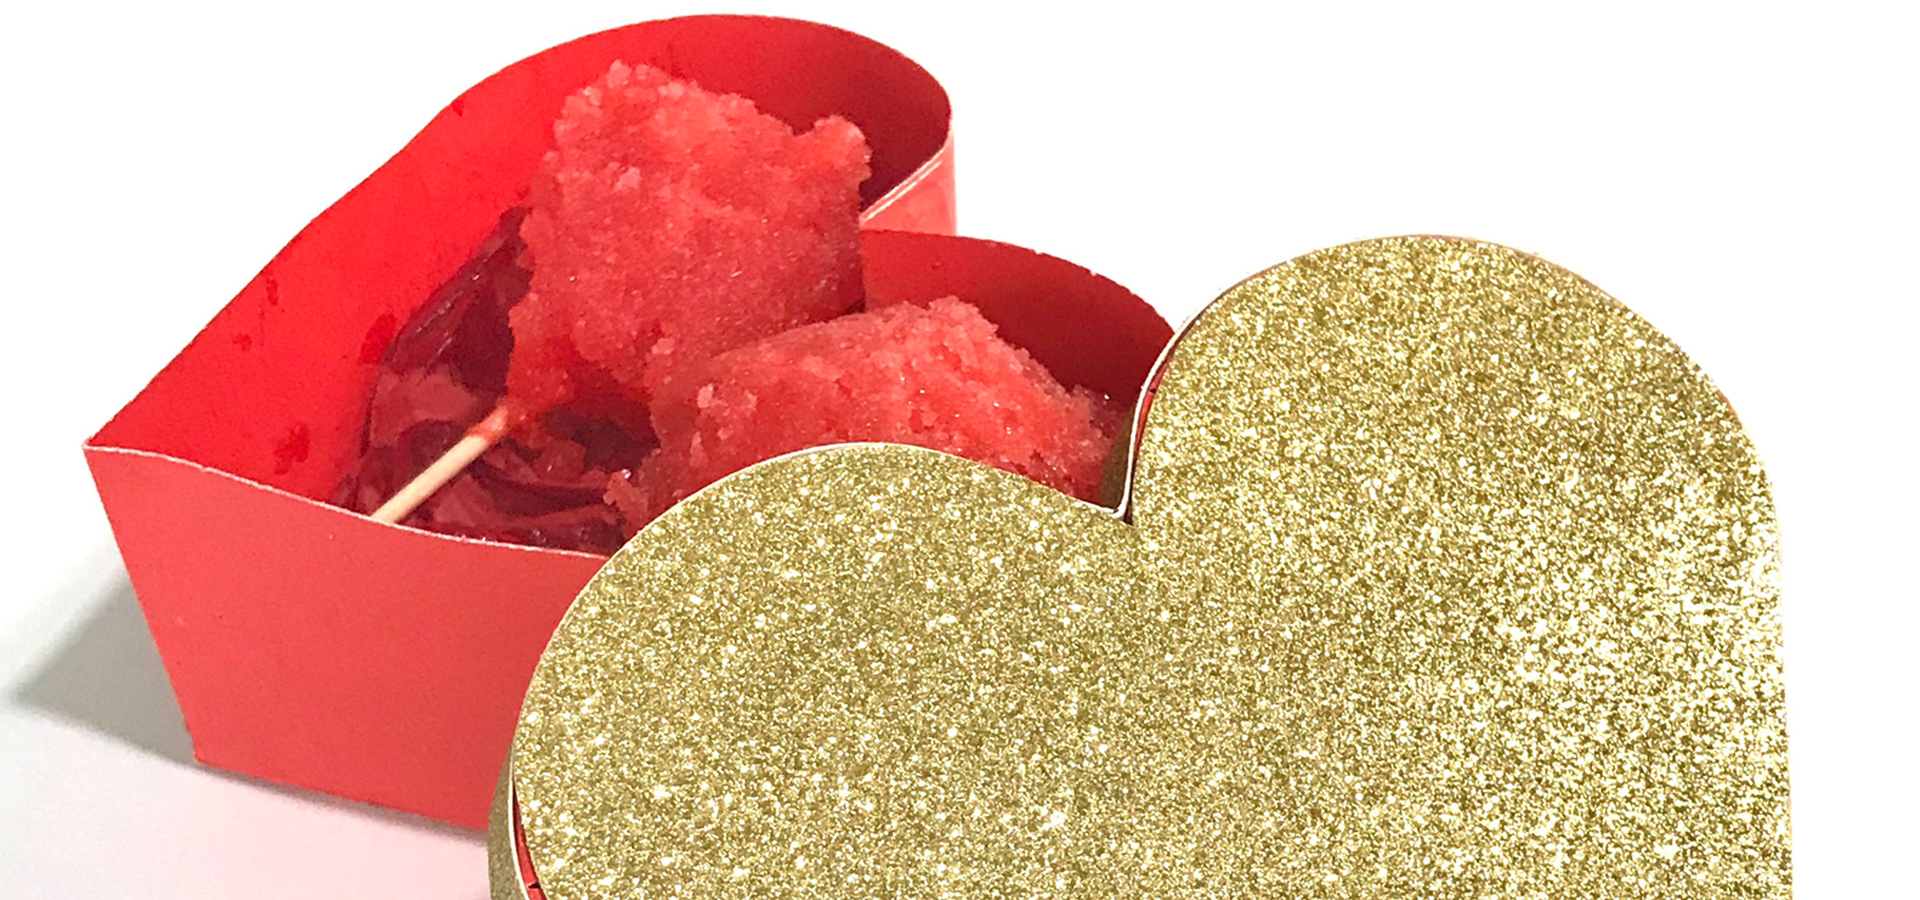 A heart-shaped red box with a gold glitter top